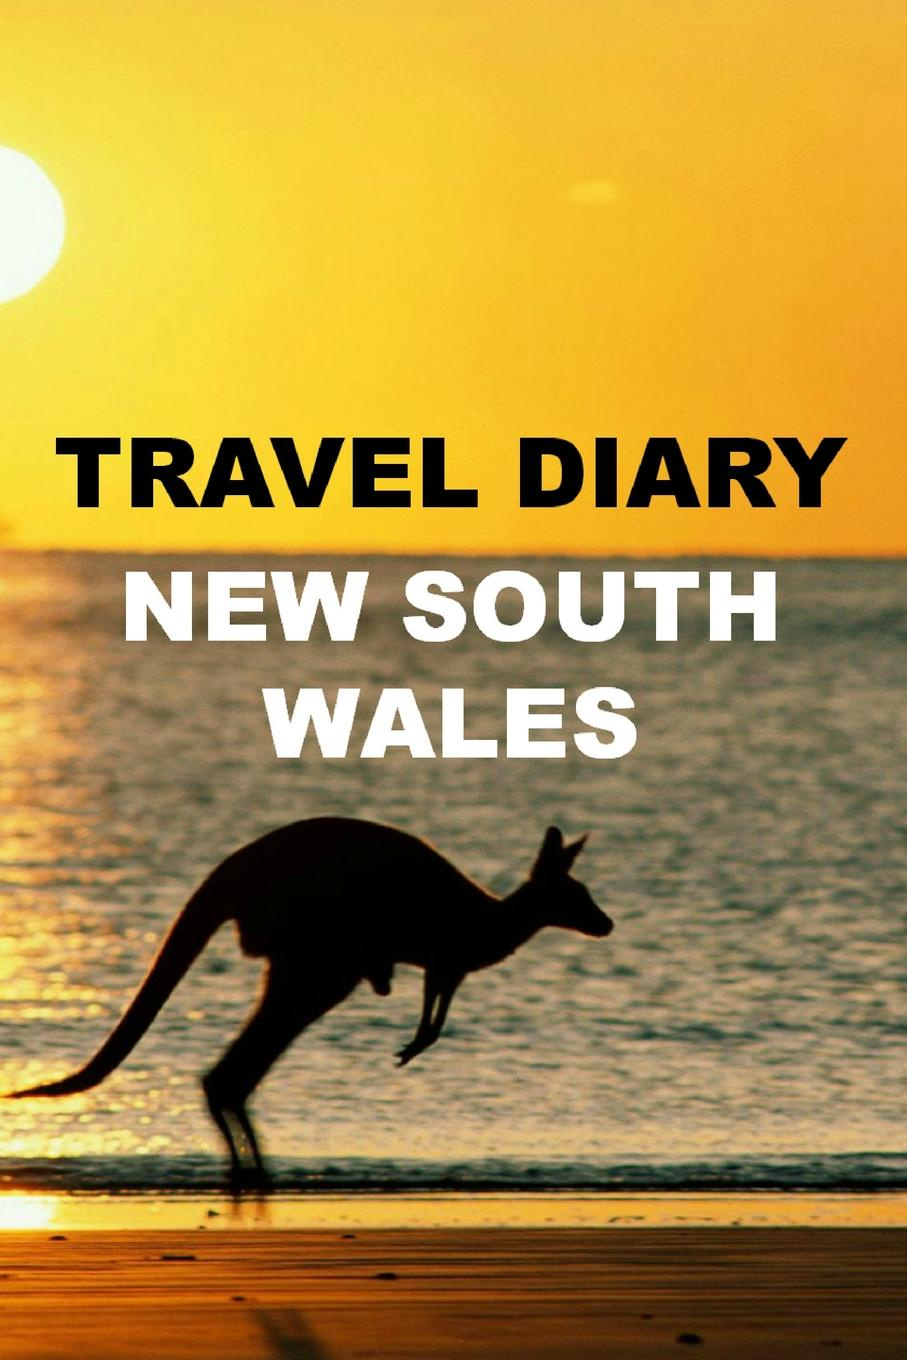 May Burke Travel Diary New South Wales teri b racey master of the storm journal mindful writing and sketching for self mastery page 5 page 5